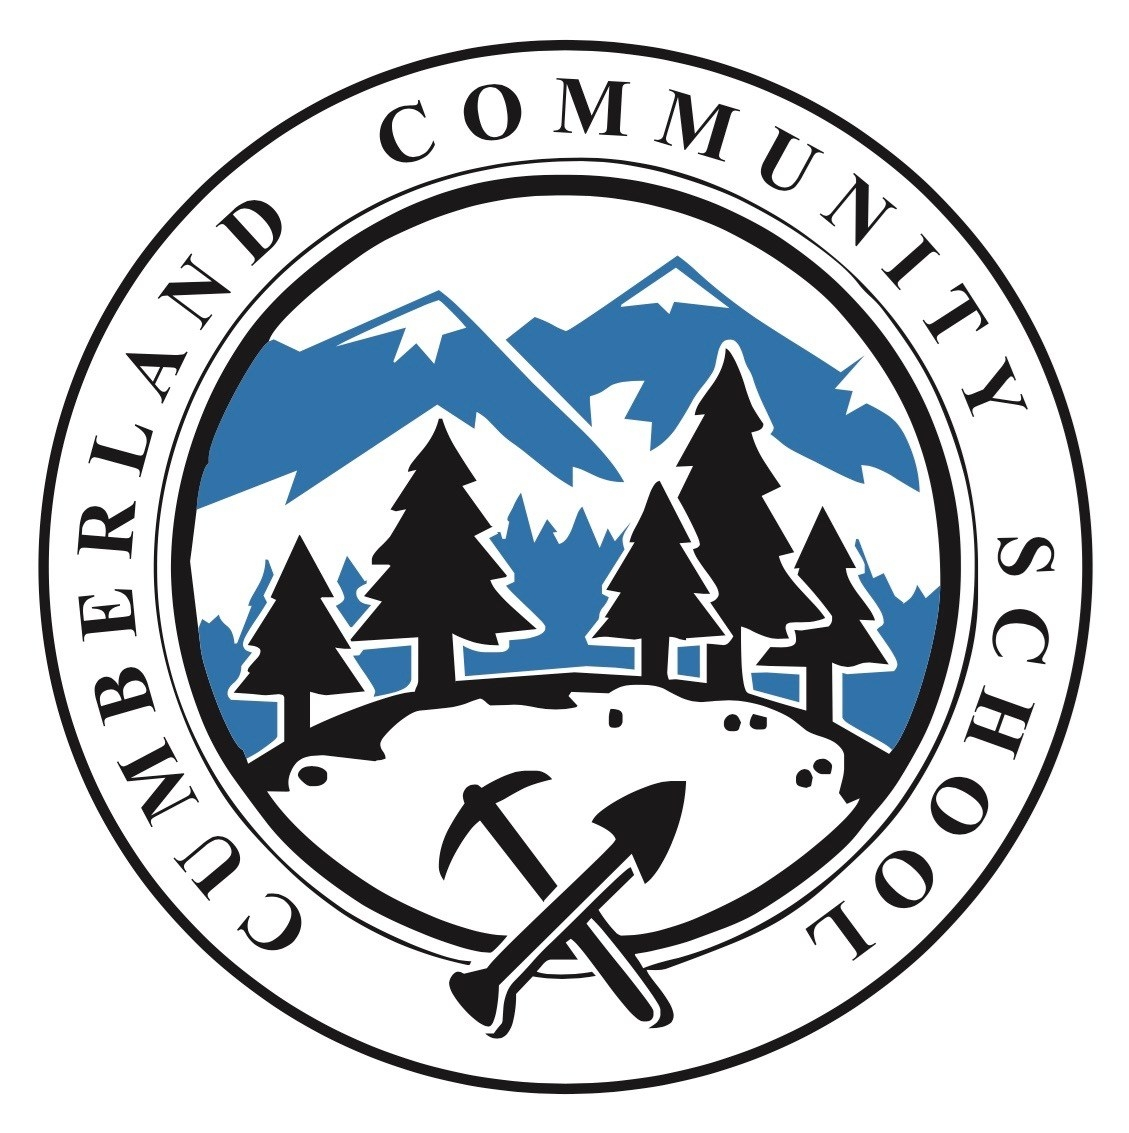 Funding for Cumberland Community School